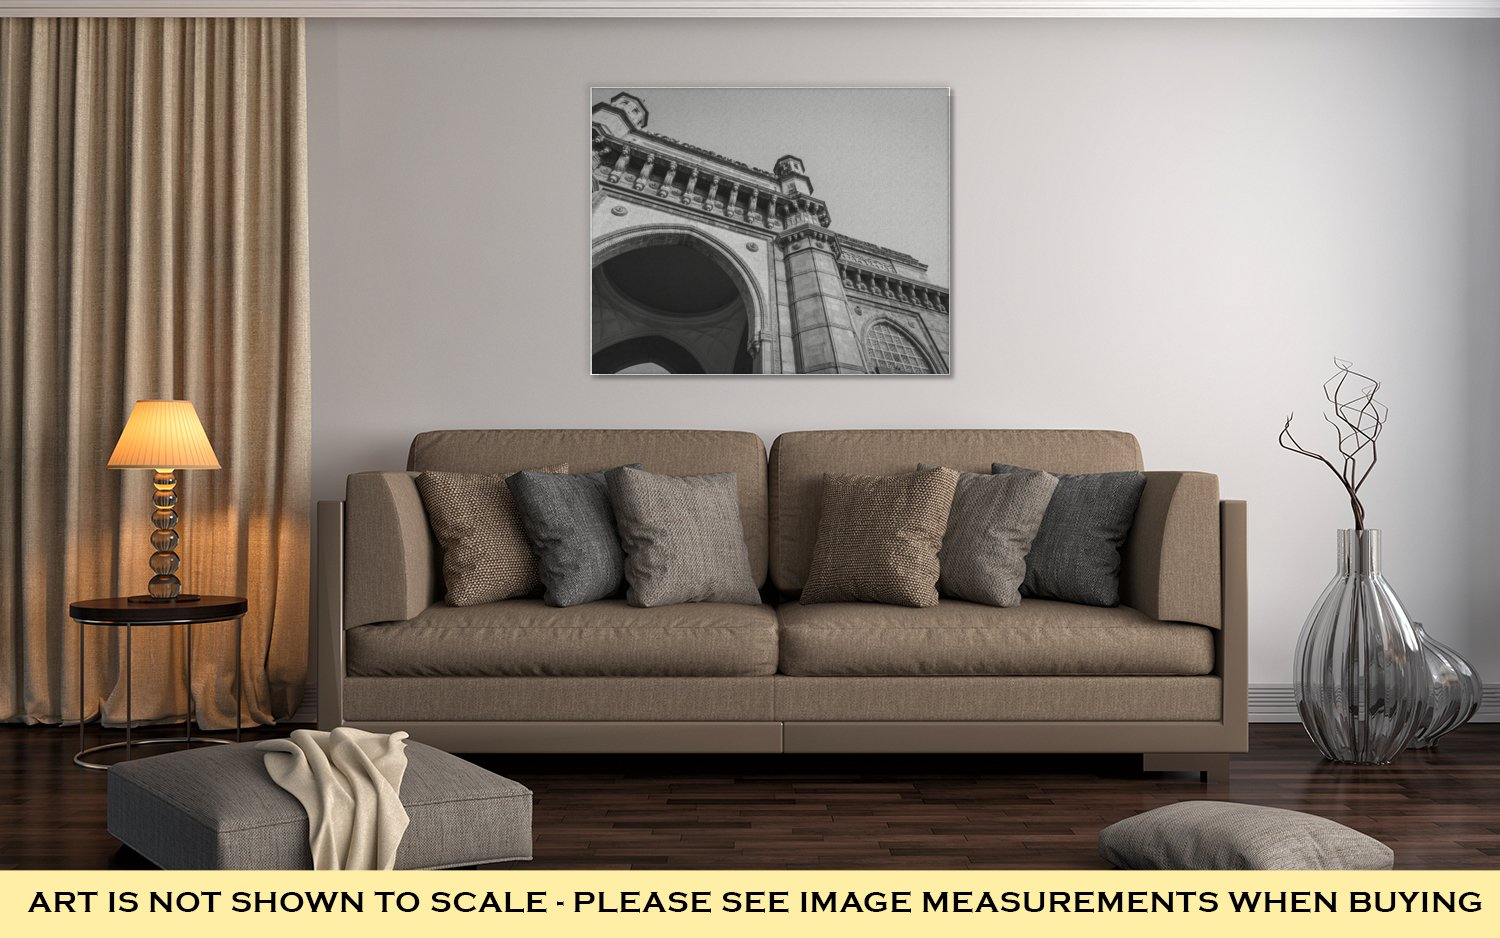 Ashley Canvas The Gateway Of India A Monument, Wall Art Home Decor, Ready to Hang, Black/White, 16x20, AG6395671